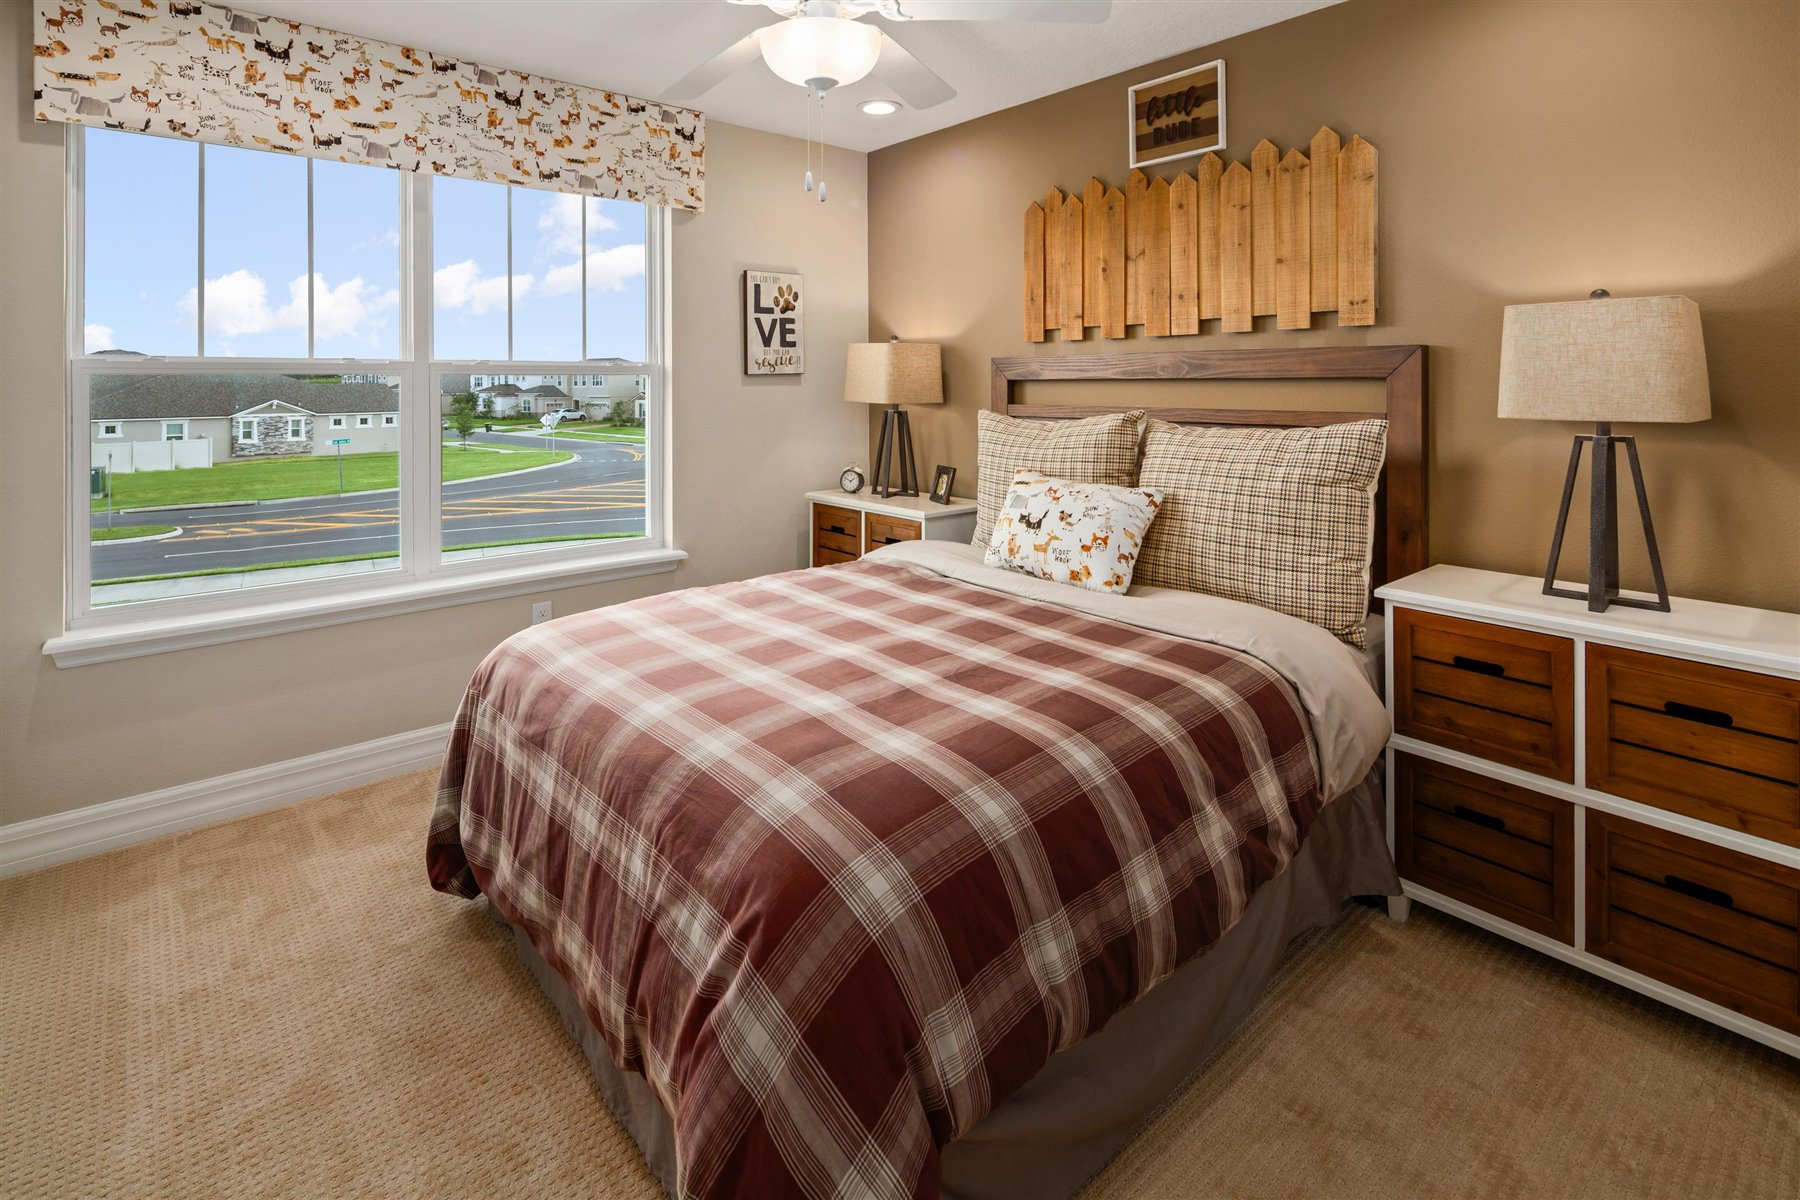 Francesca III Plan Bedroom at Randal Walk in Orlando Florida by Mattamy Homes